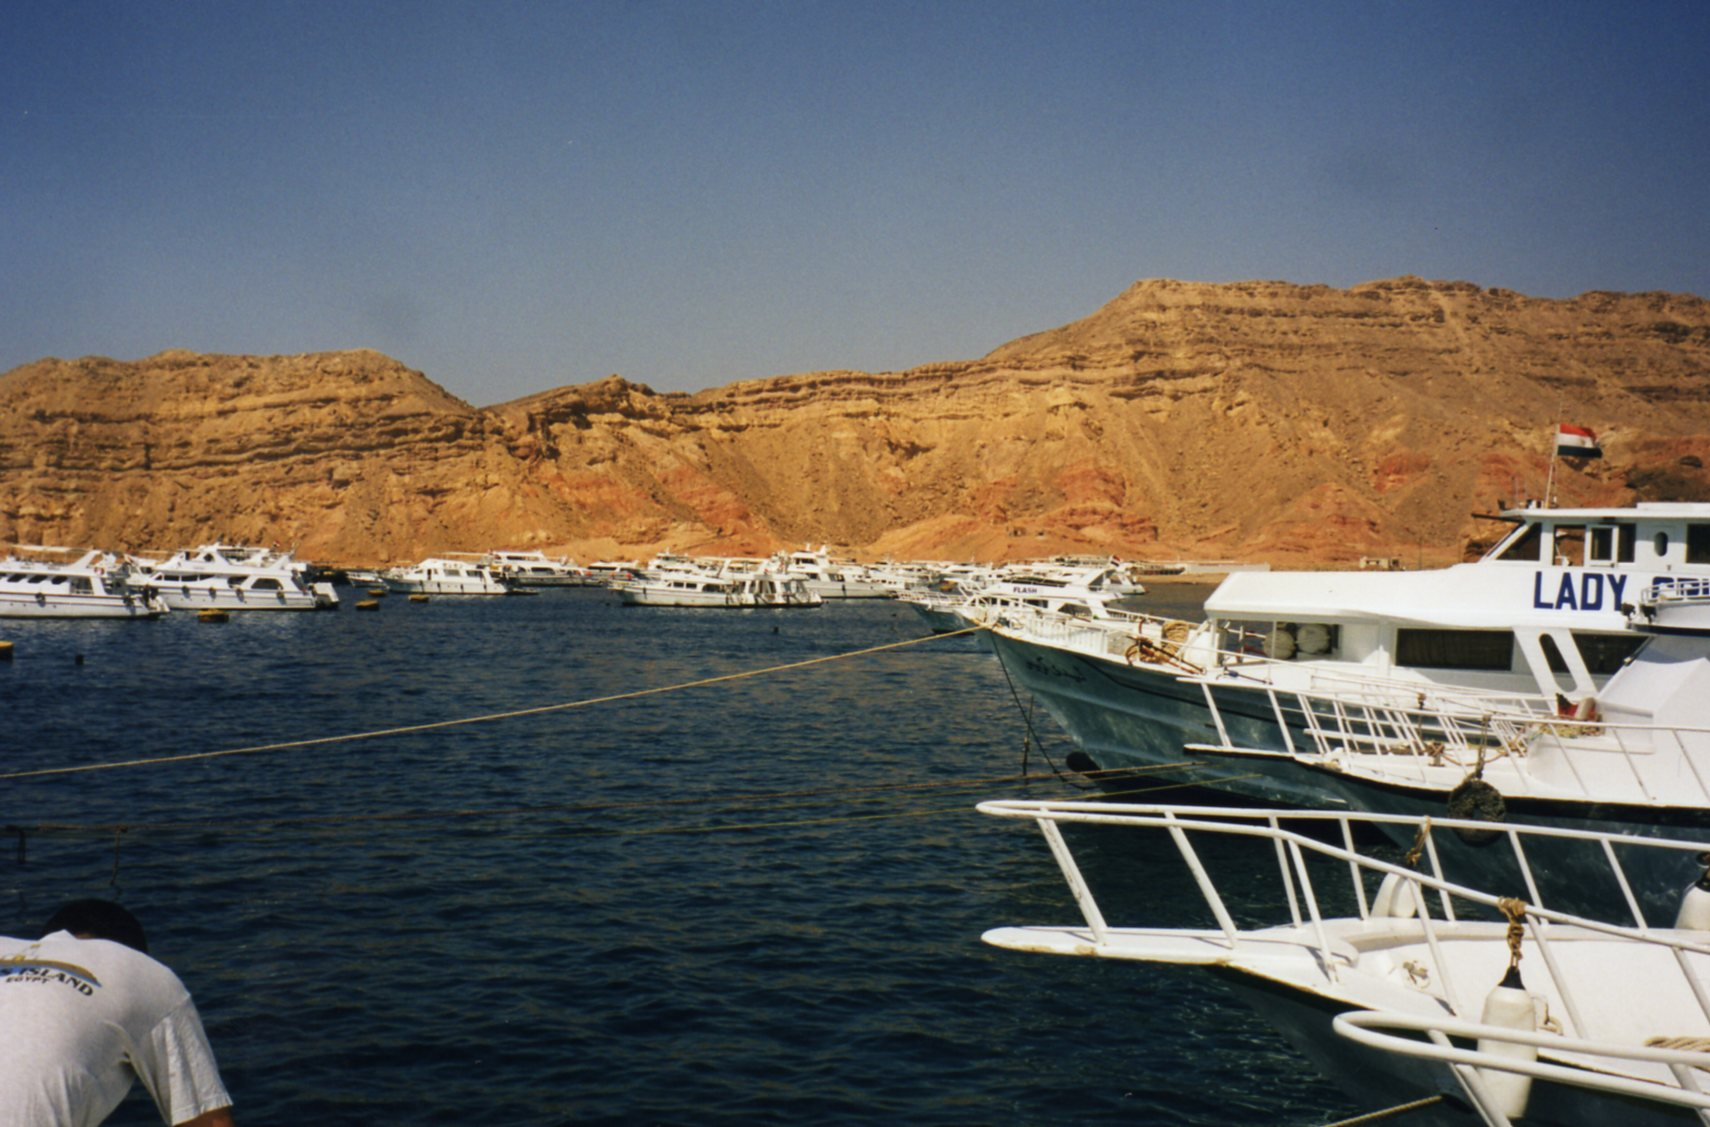 Which boat is ours? The harbour at Sharm el Sheikh